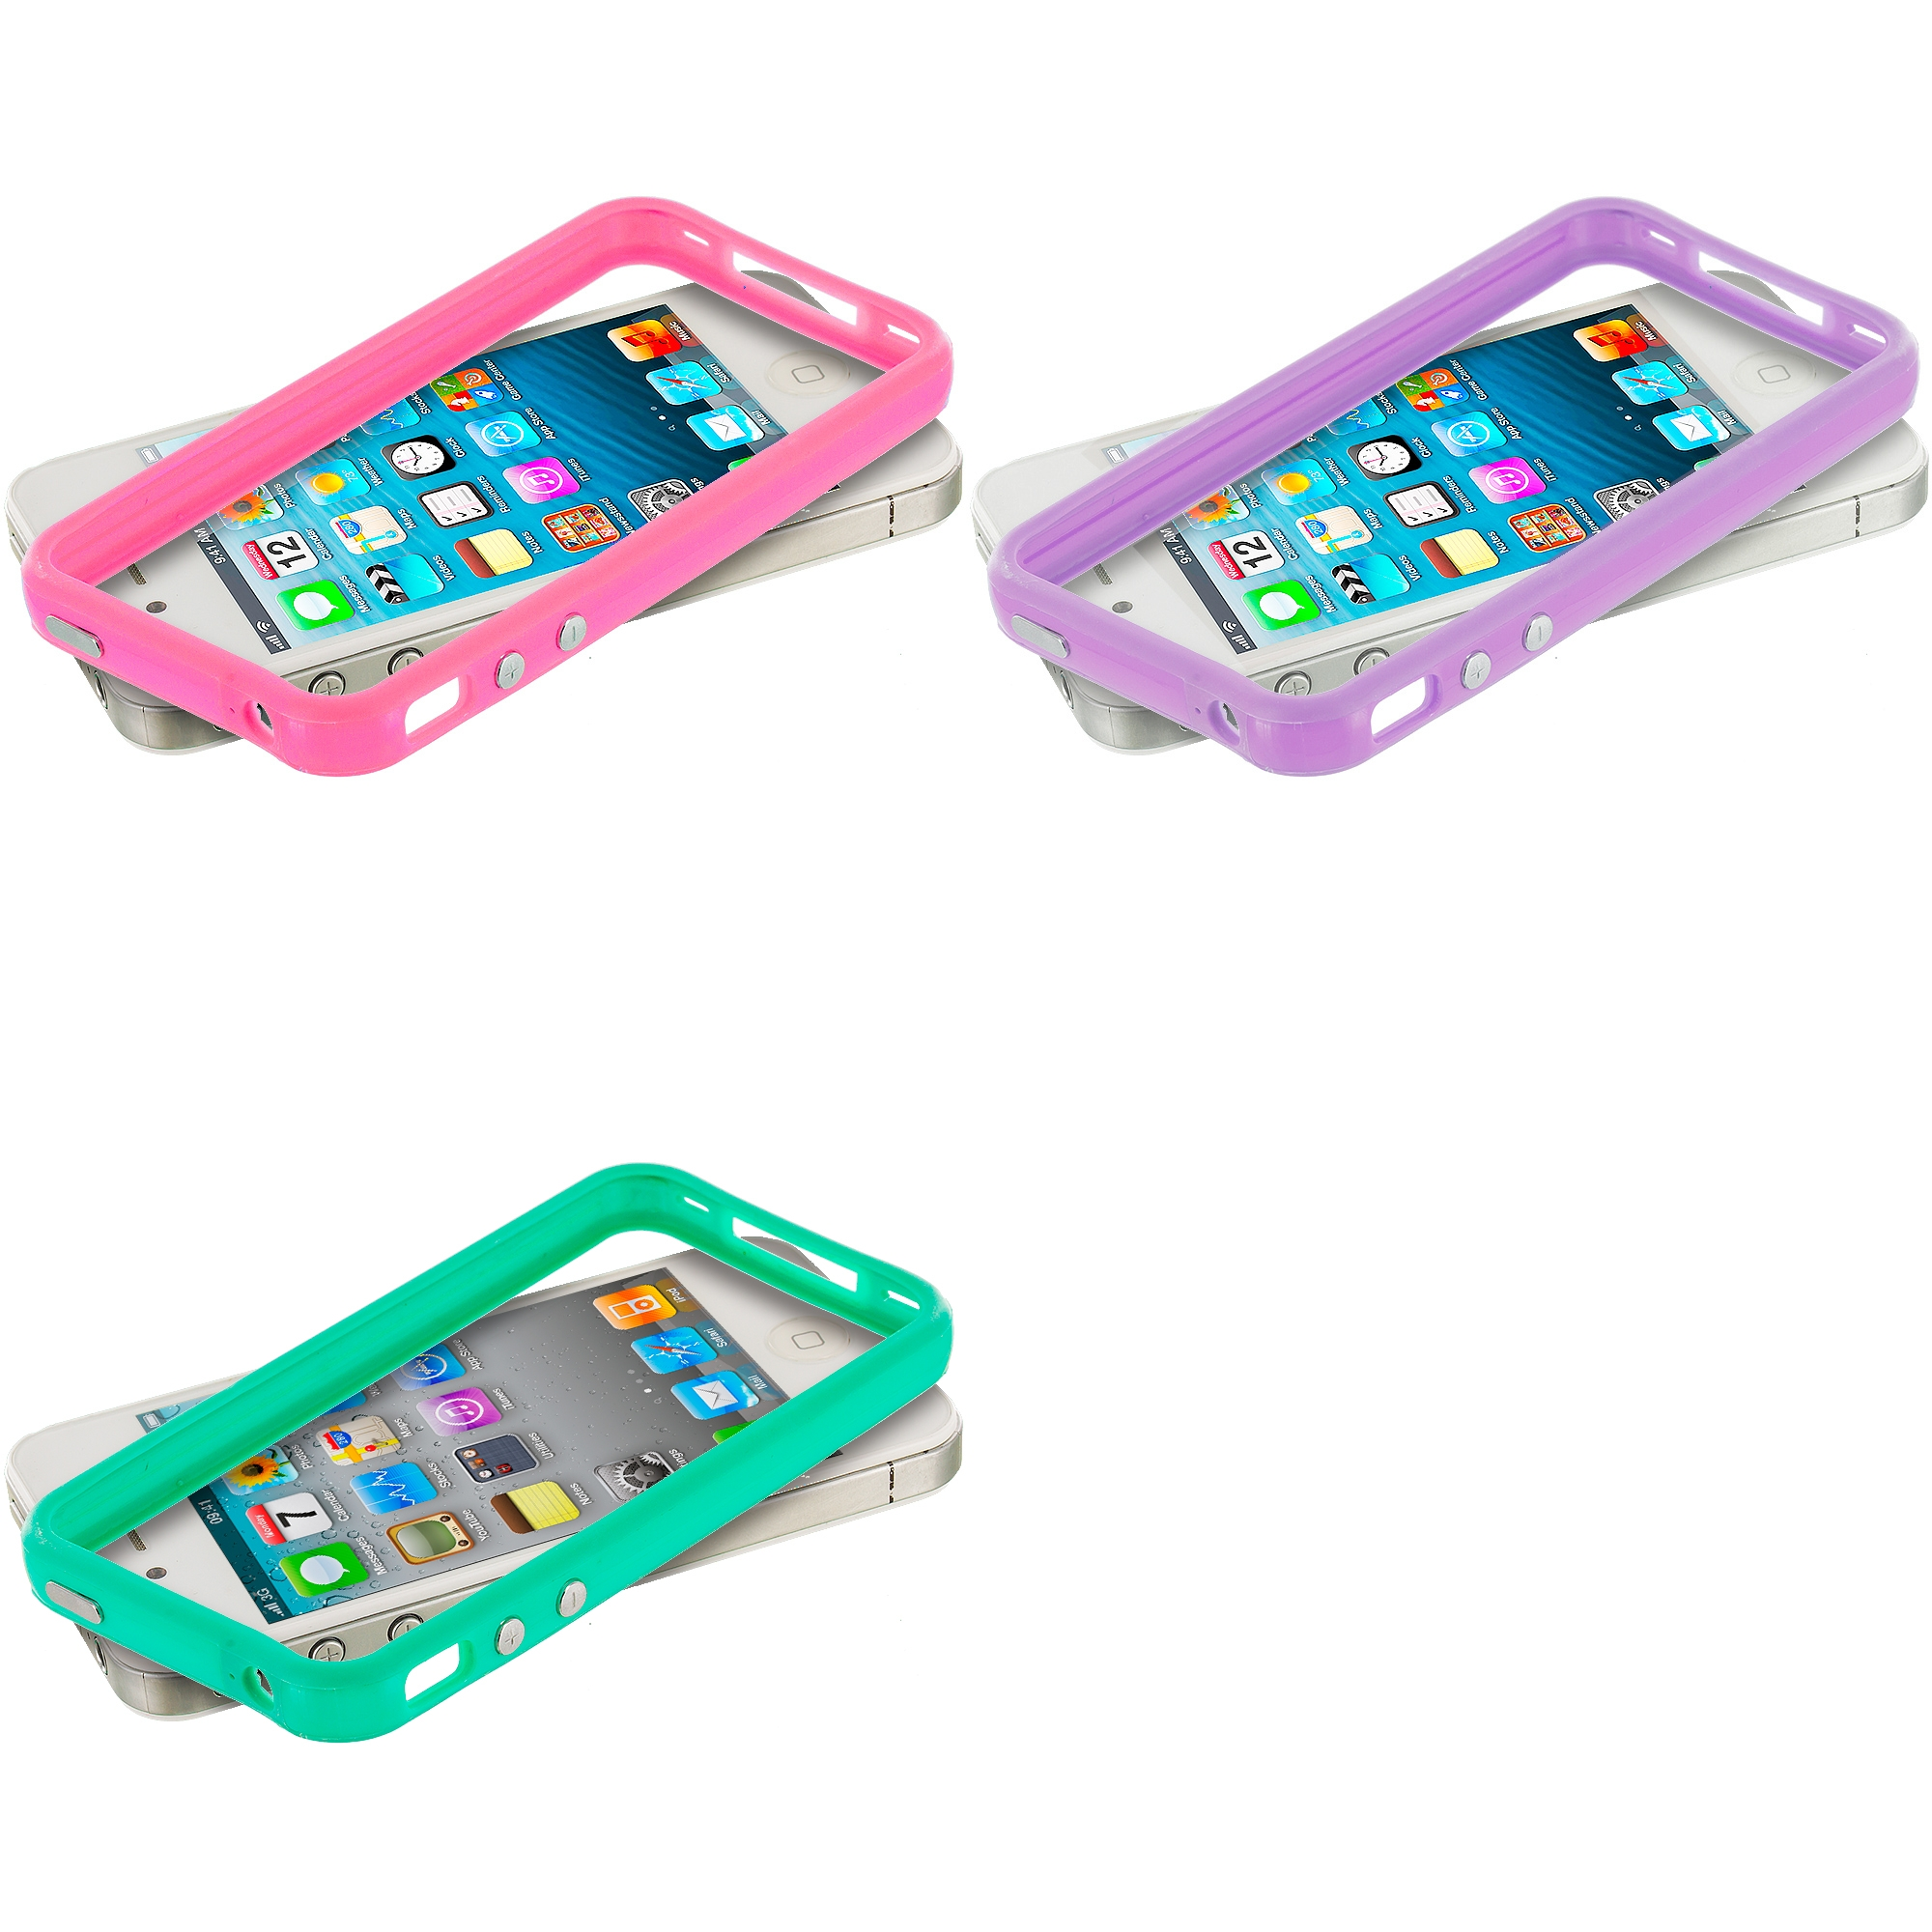 Apple iPhone 5/5S/SE Combo Pack : Light Pink TPU Bumper Frame Case Cover